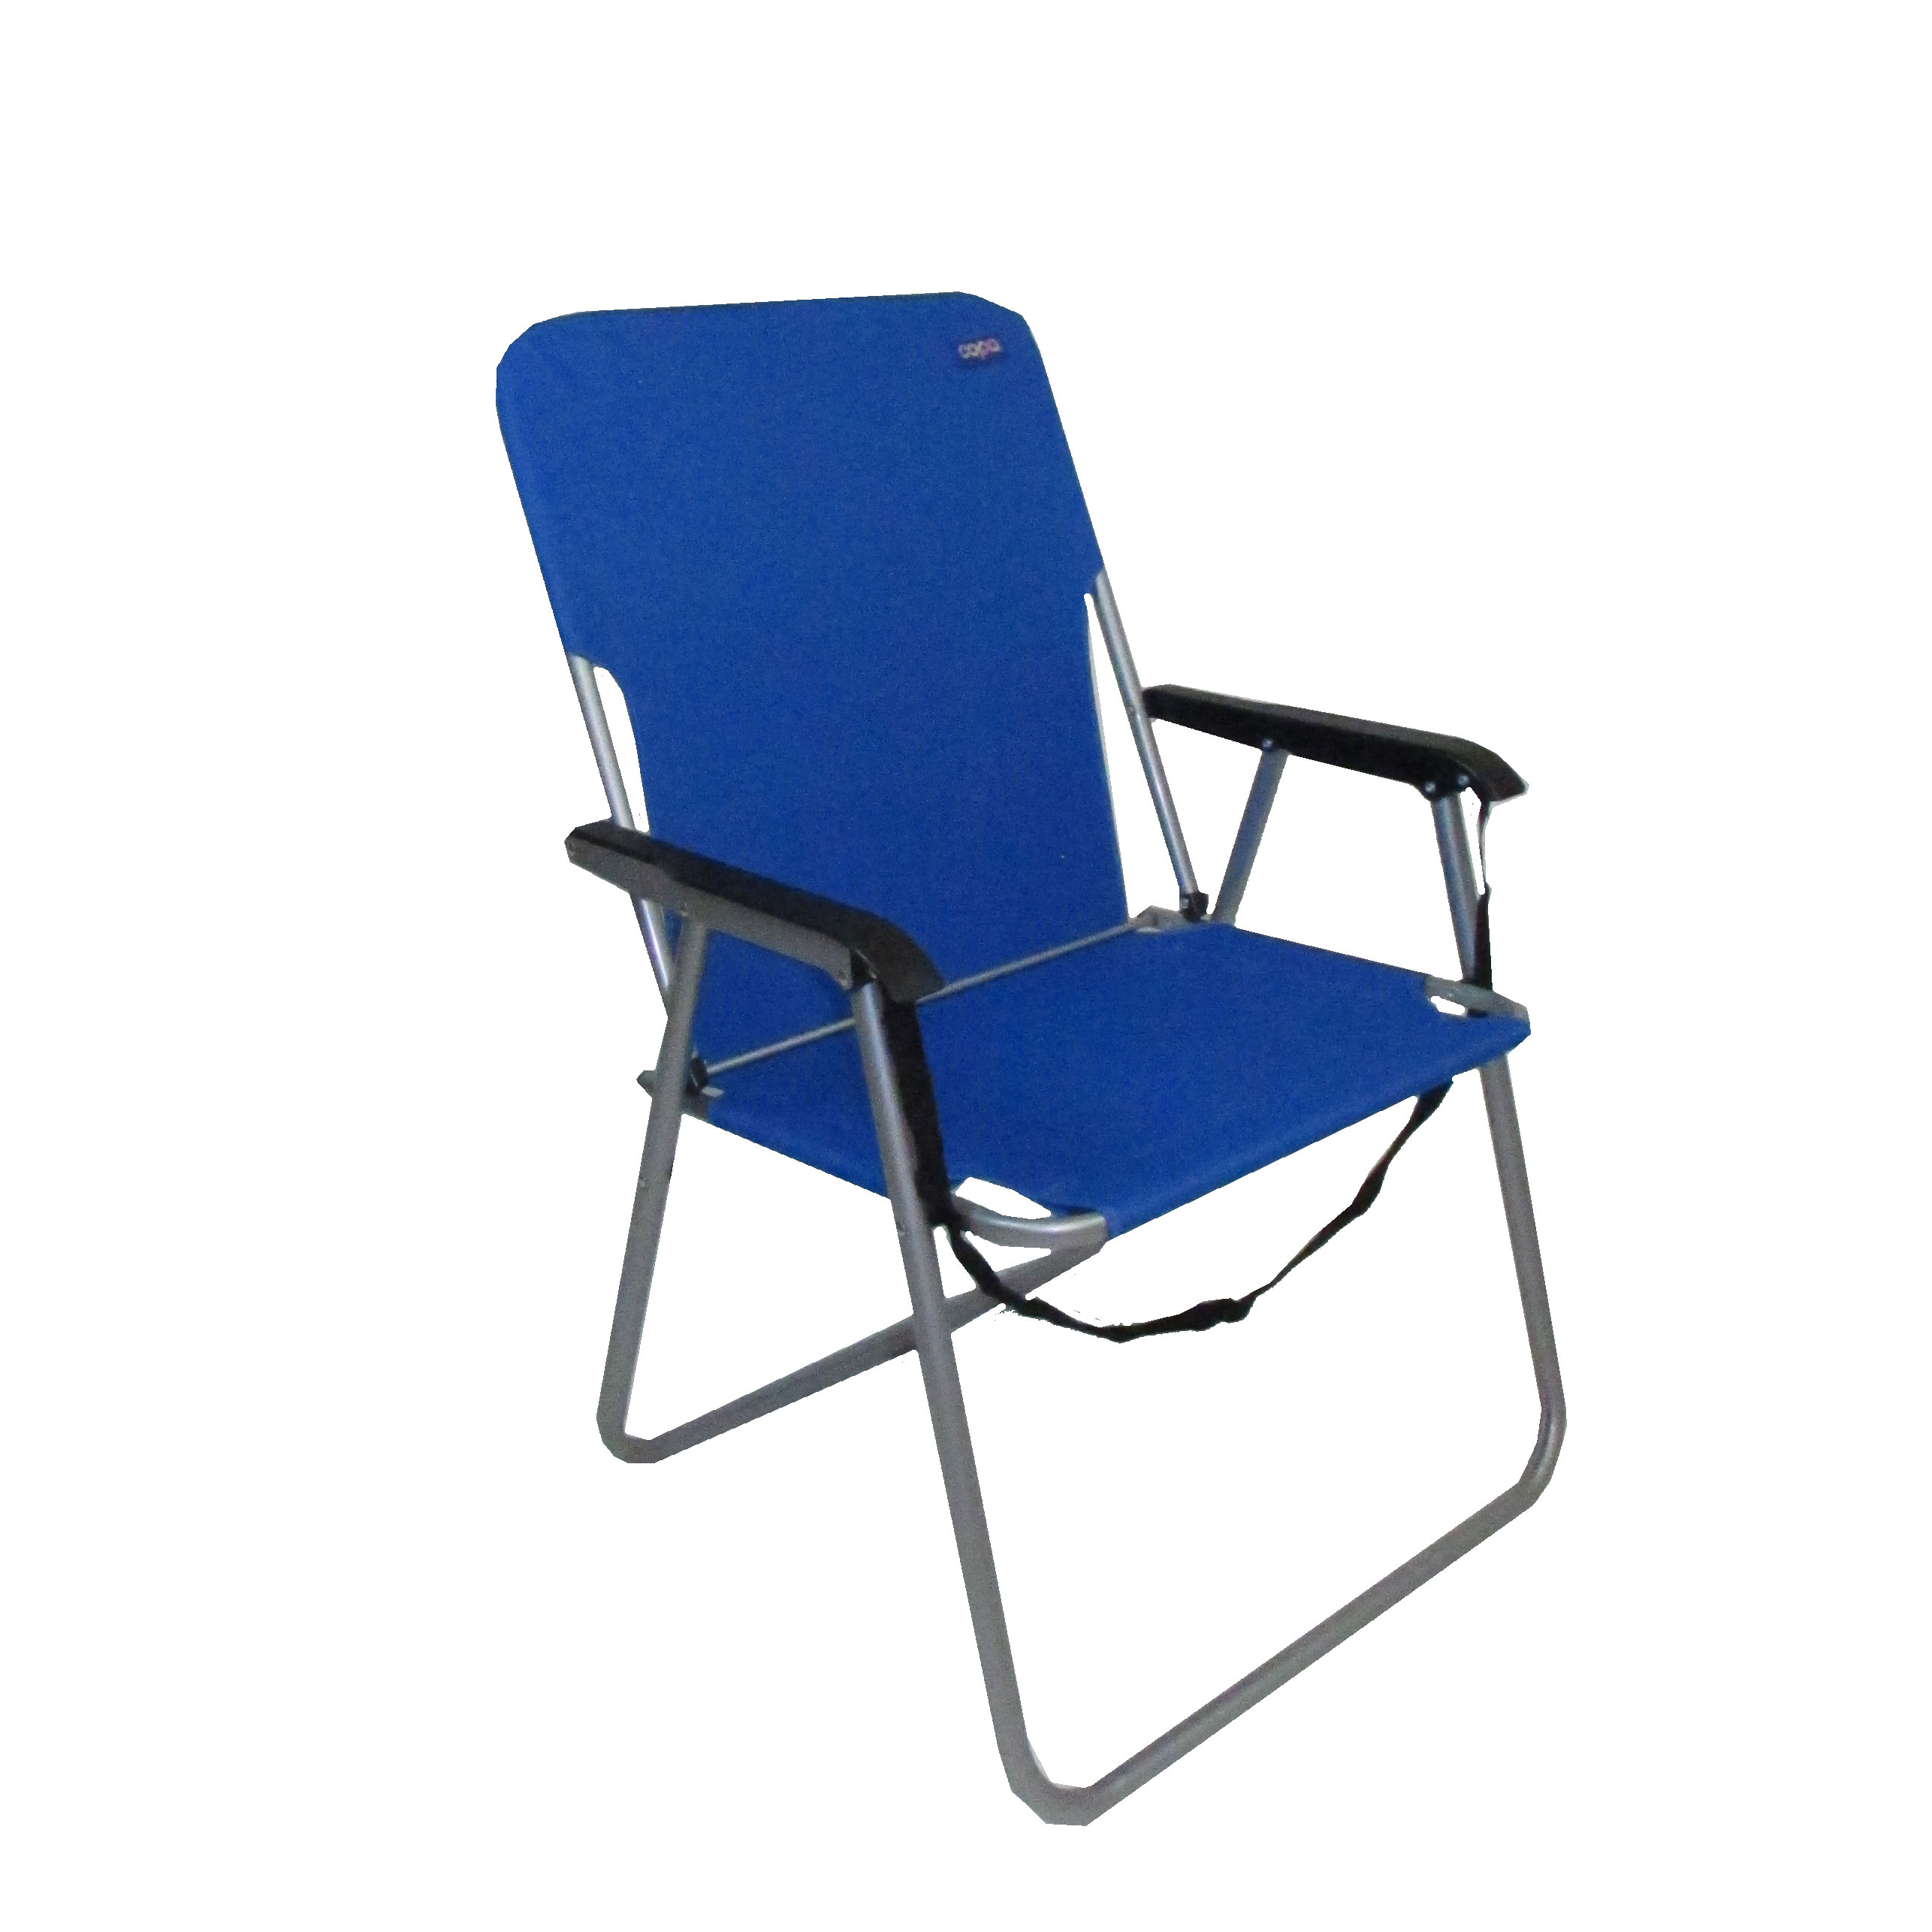 High Seat Beach Chair by JGR